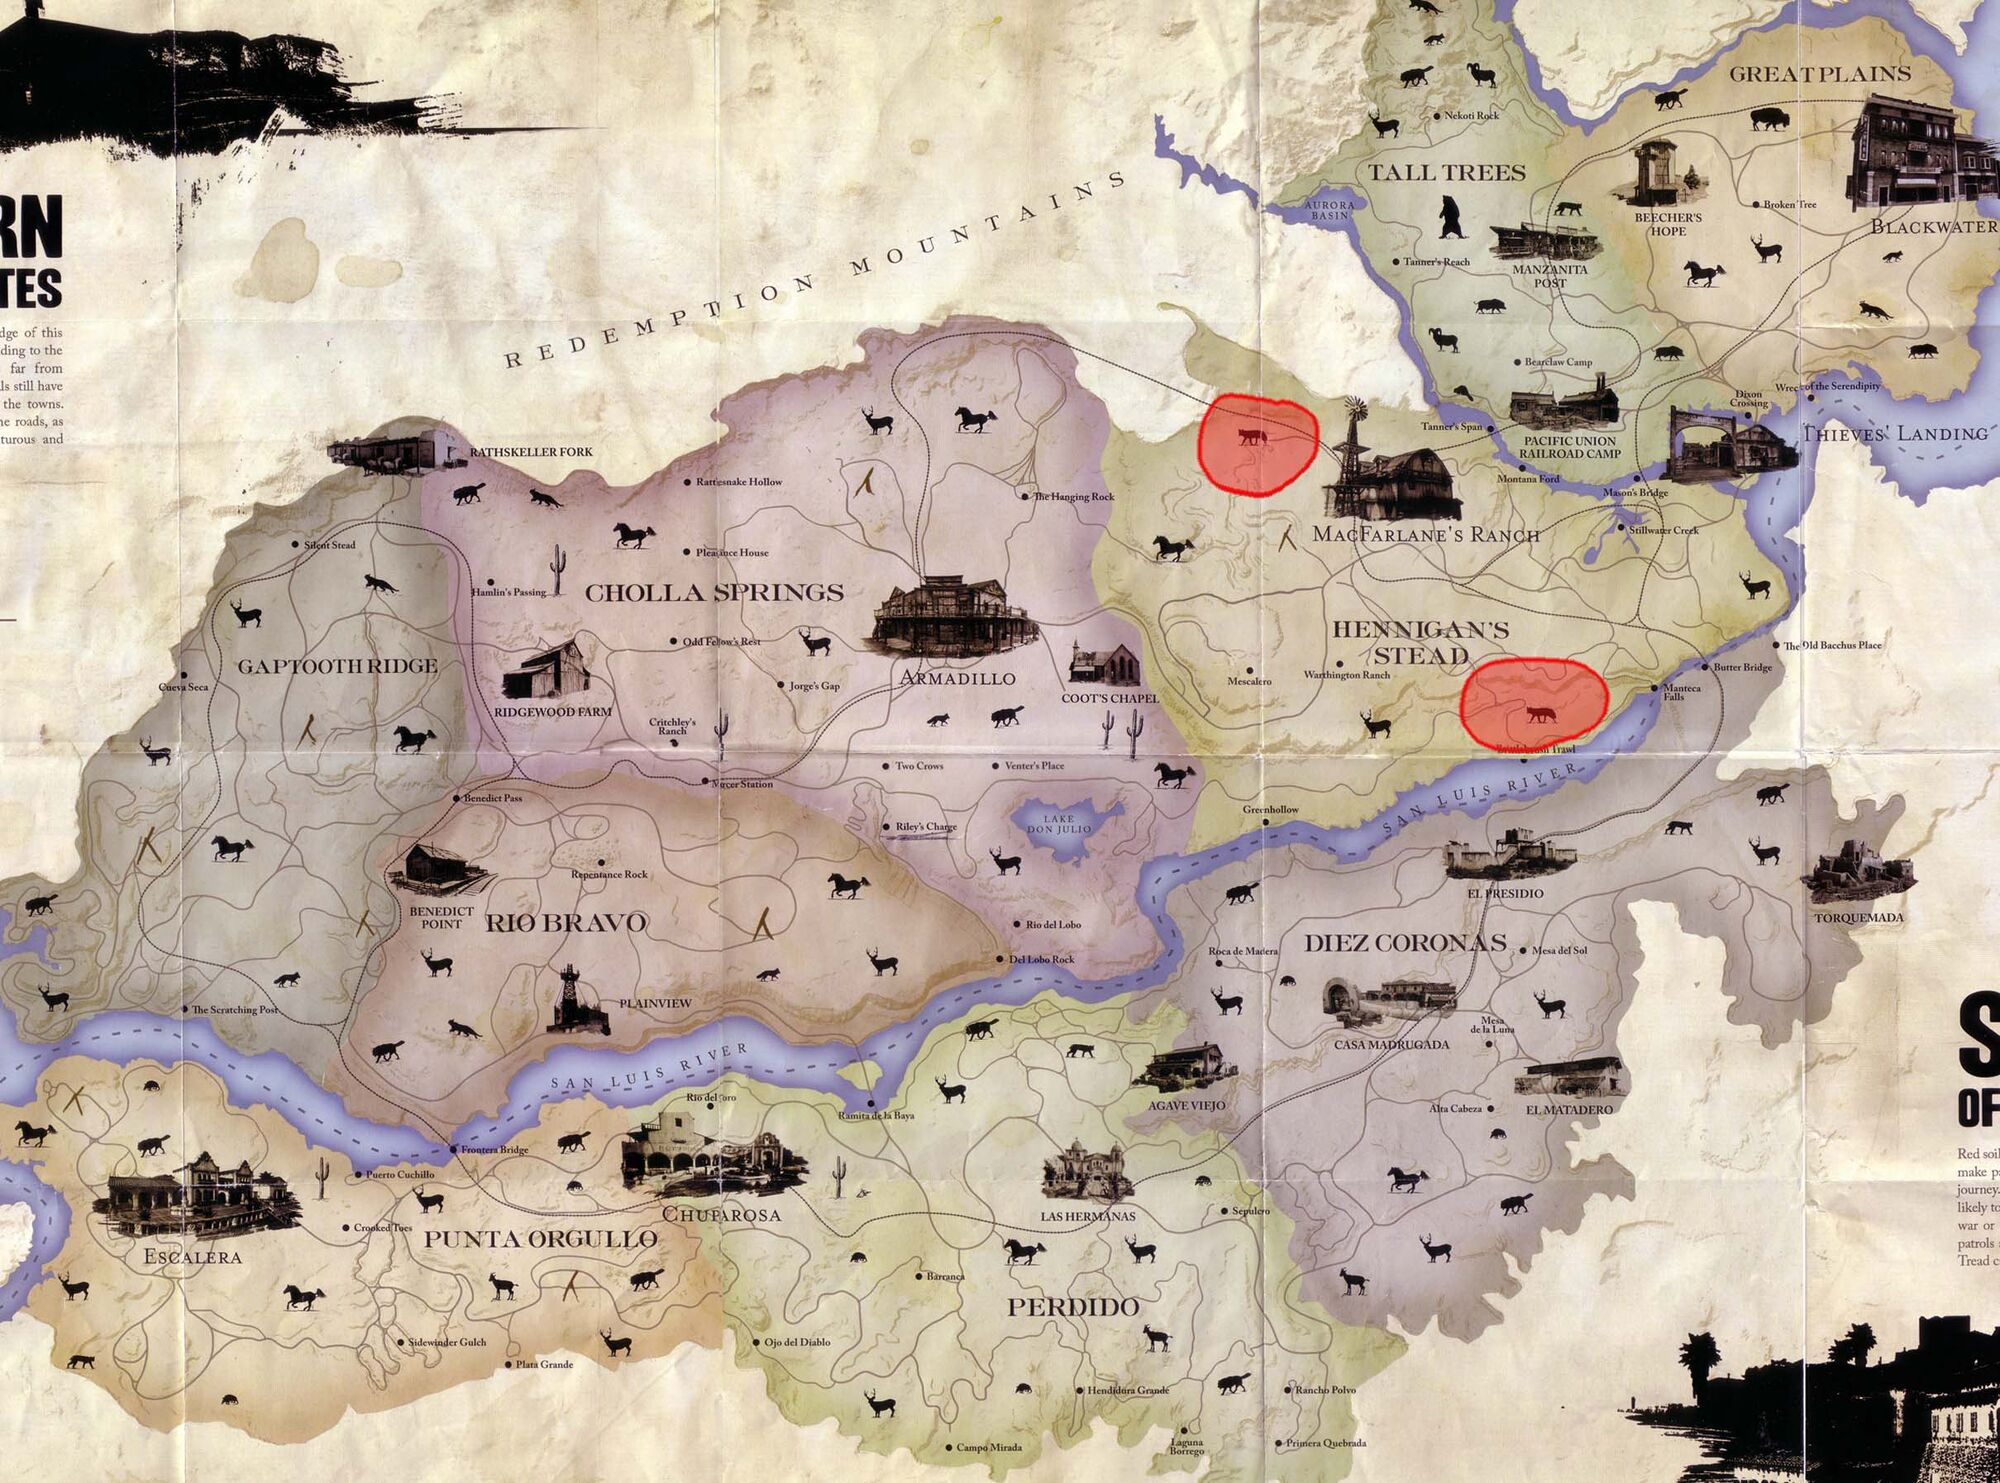 Image Coyote Locationjpg Red Dead Wiki FANDOM Powered By Wikia - Red dead redemption us marshal outfit map